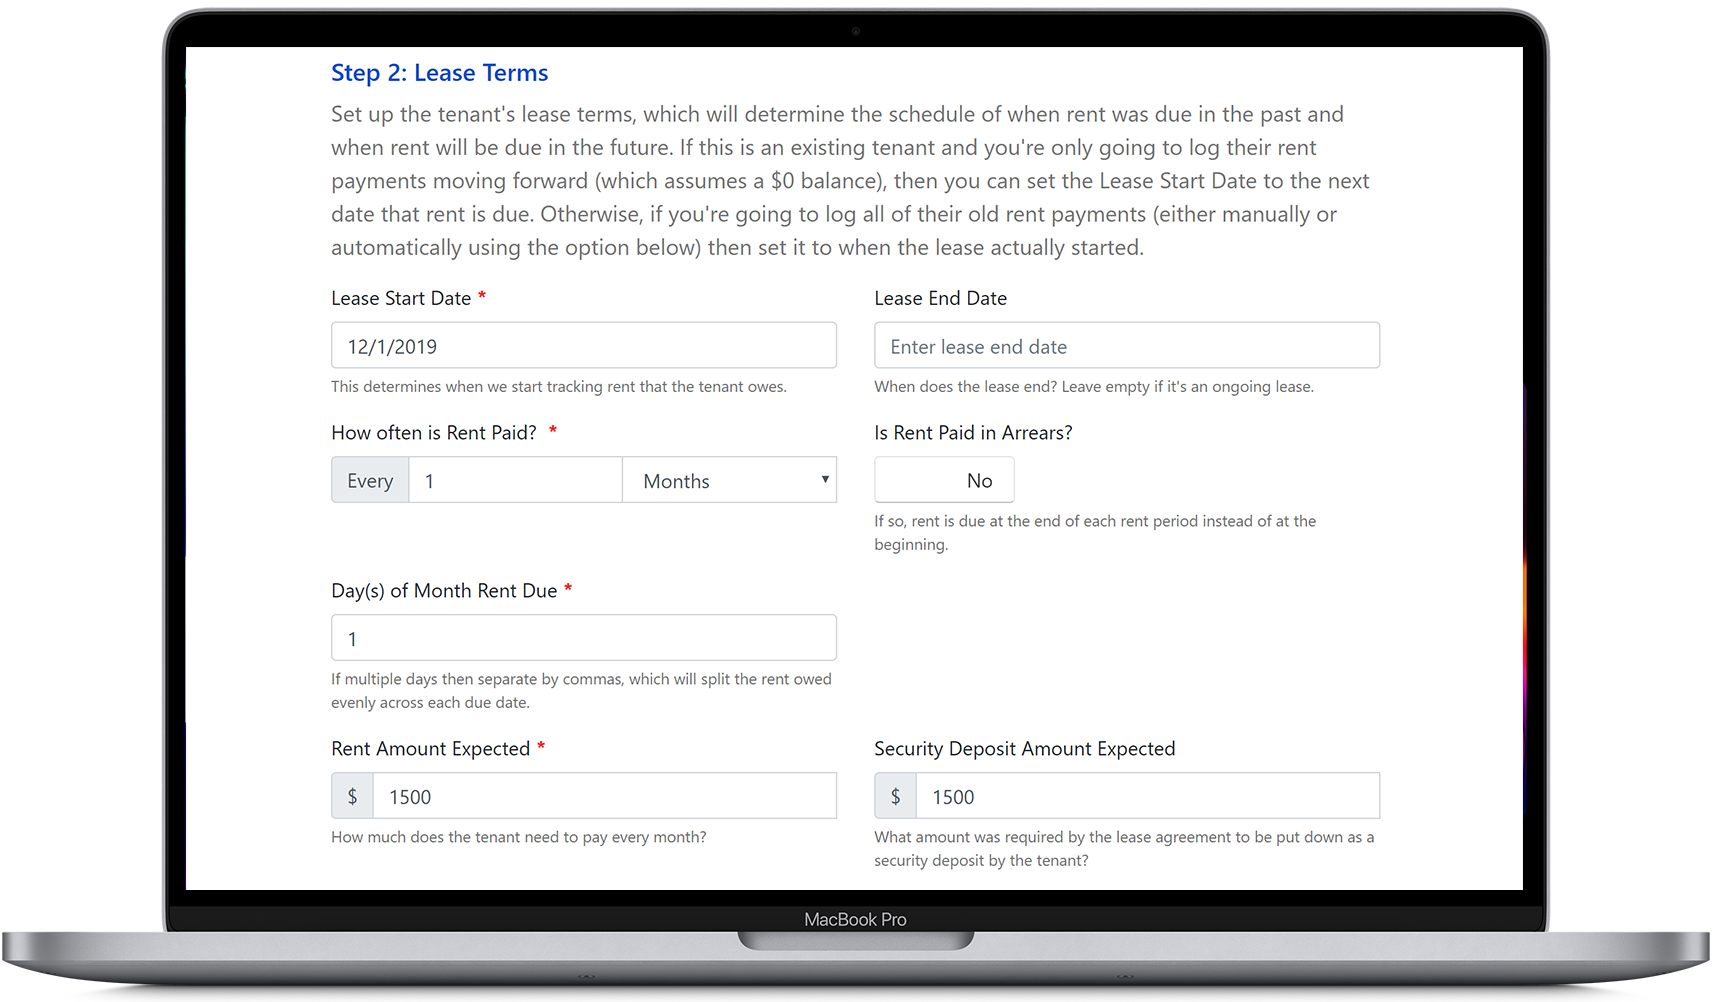 Set up the lease terms for a tenant